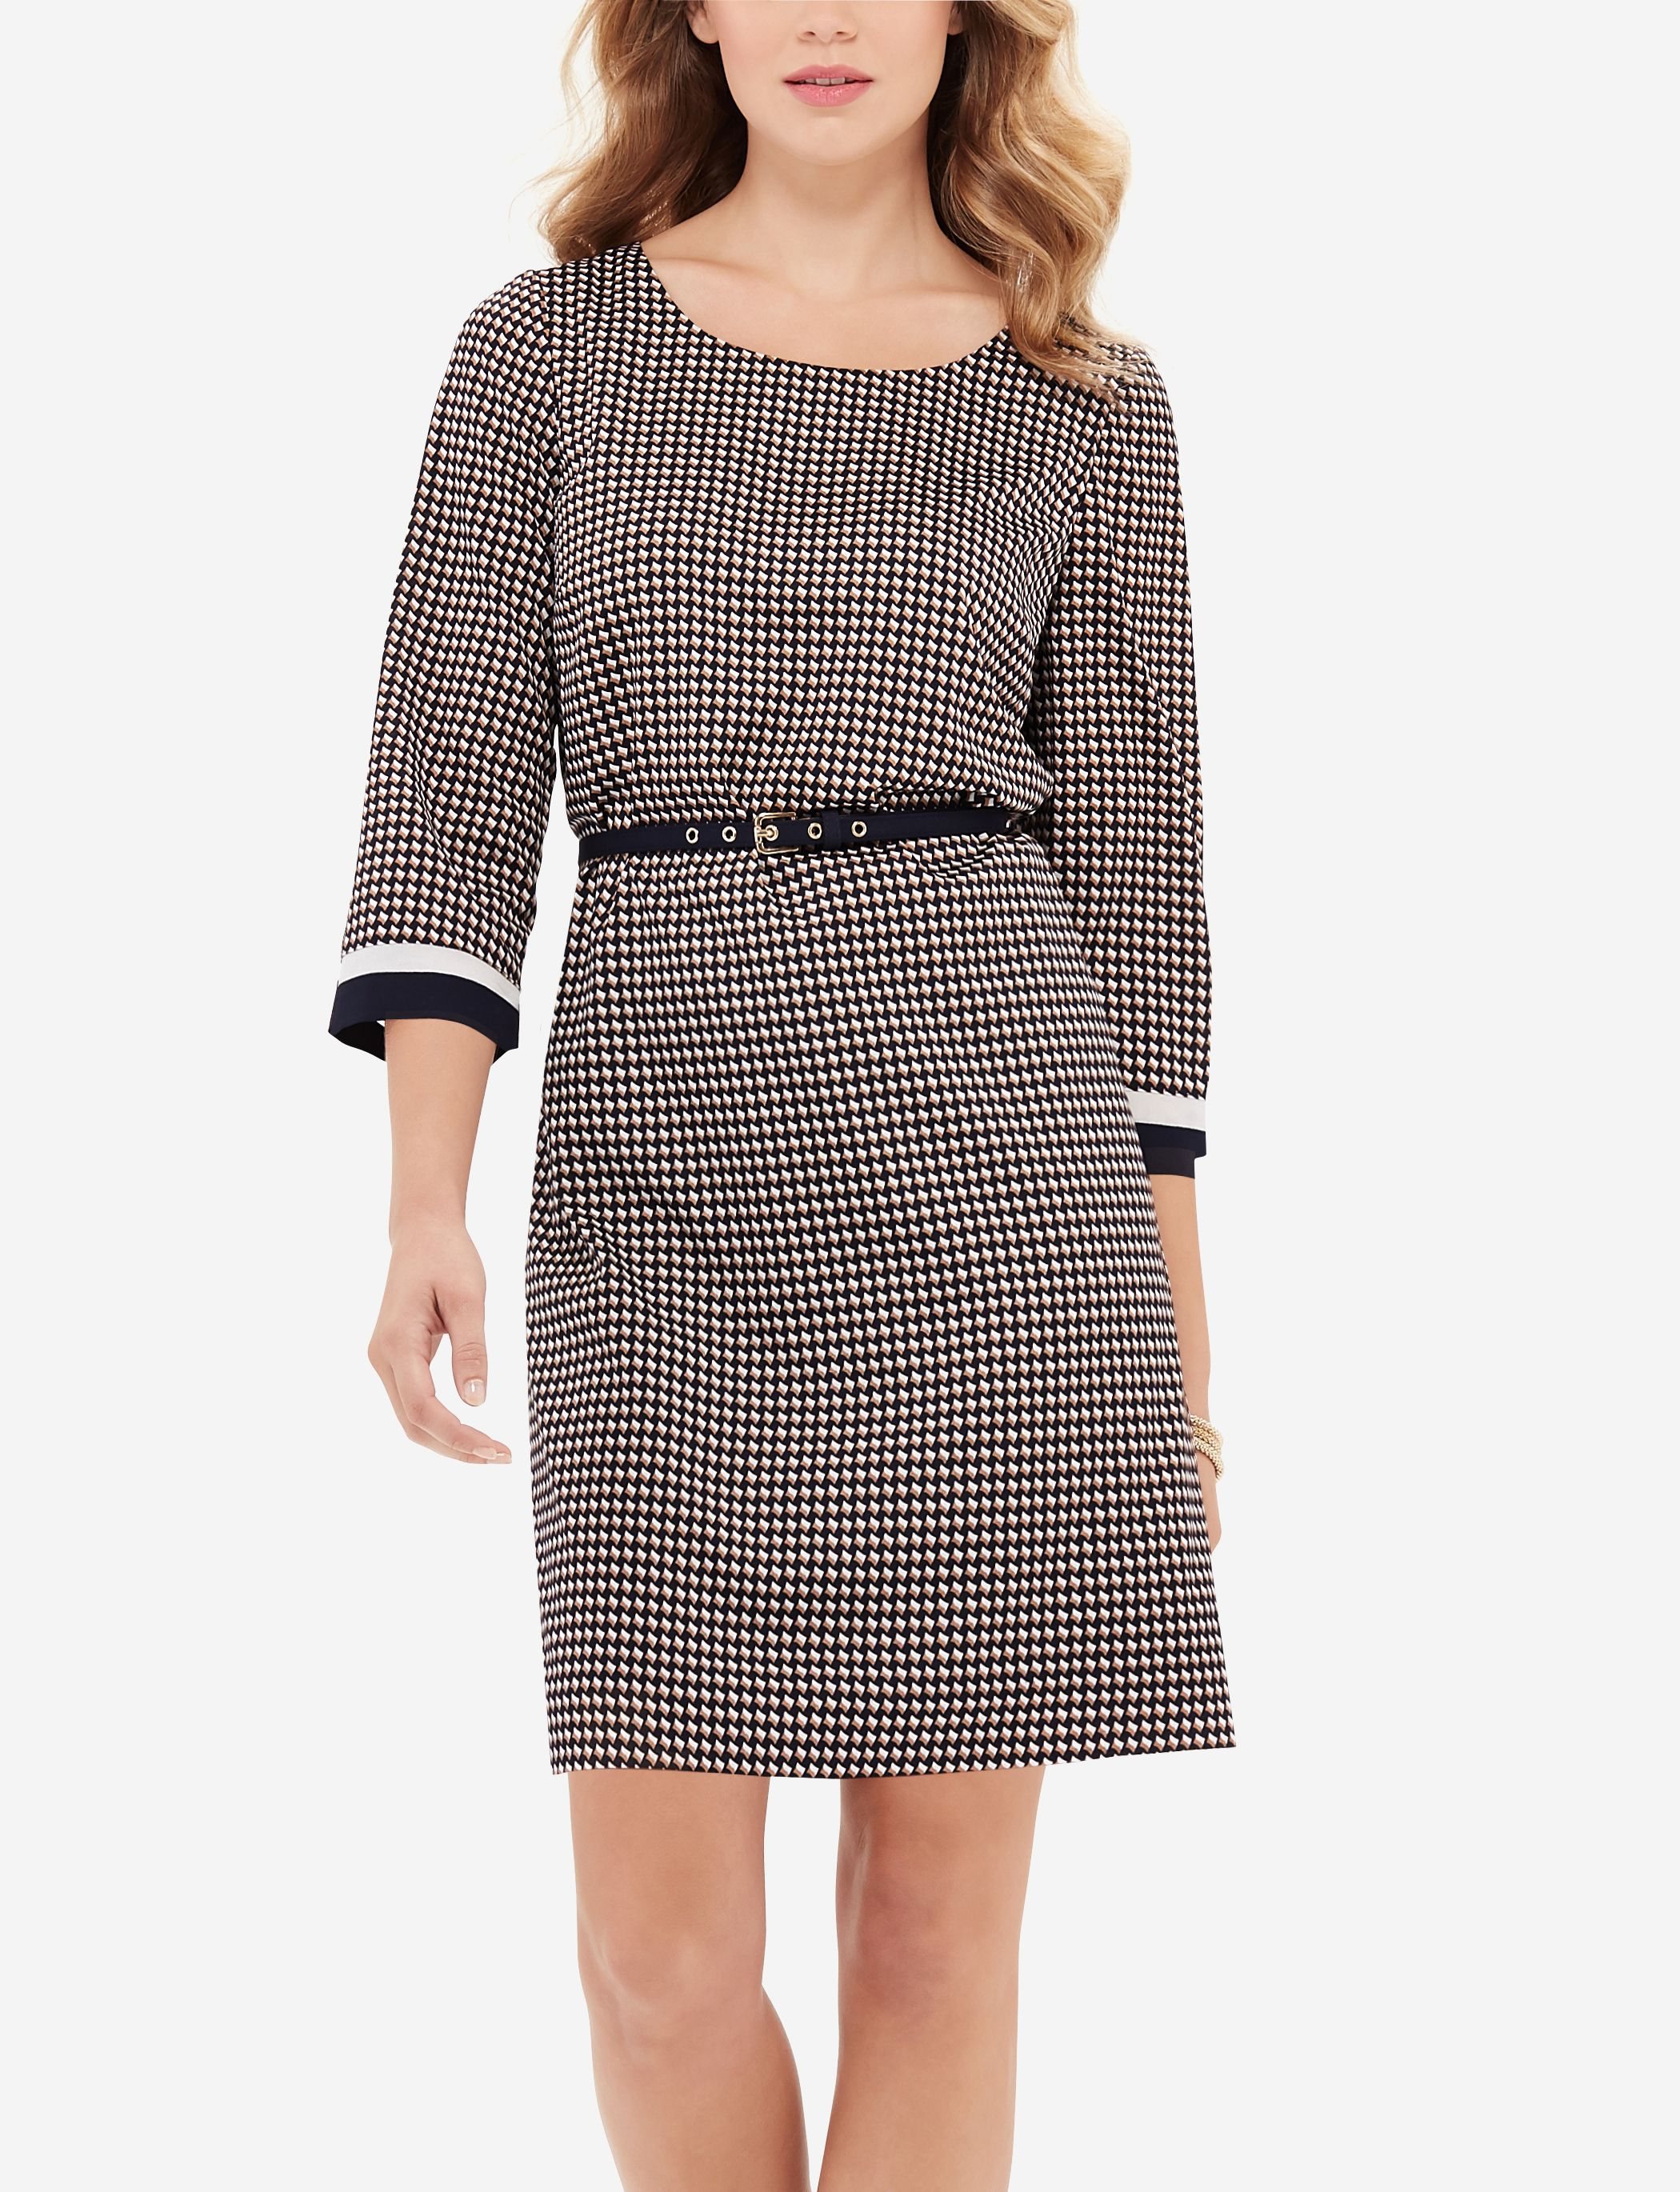 Belted Printed Shift Dress - This lightweight dress works with any body type, in classic colors that stand out thanks to a detailed graphic print.